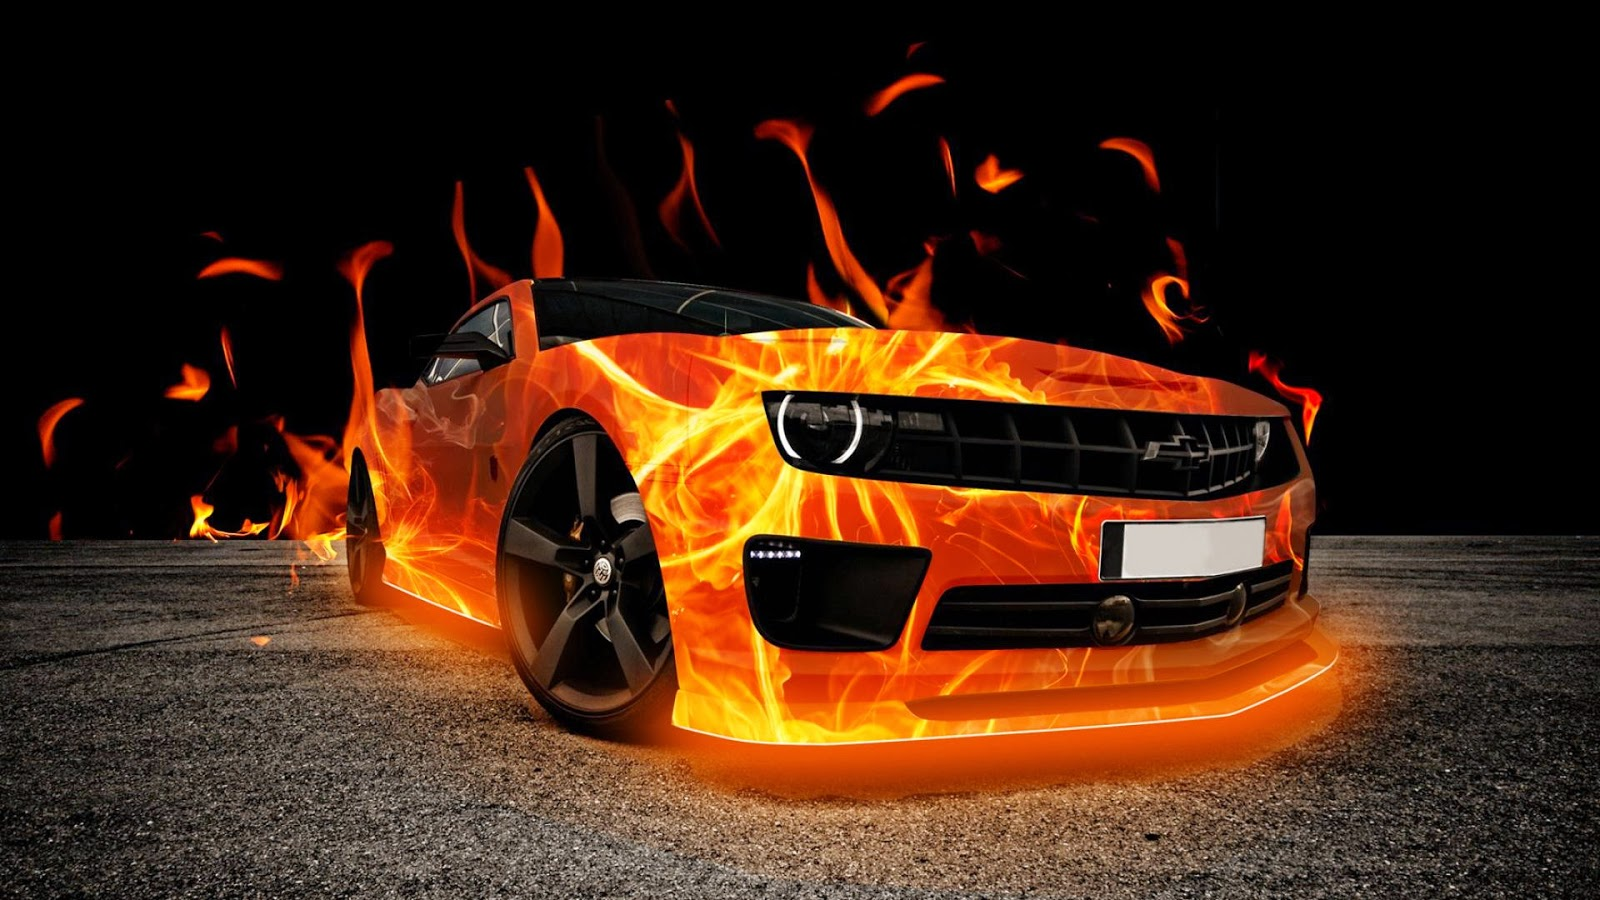 Fire+3d+wallpapers+of+cars+for+desktop2.jpg